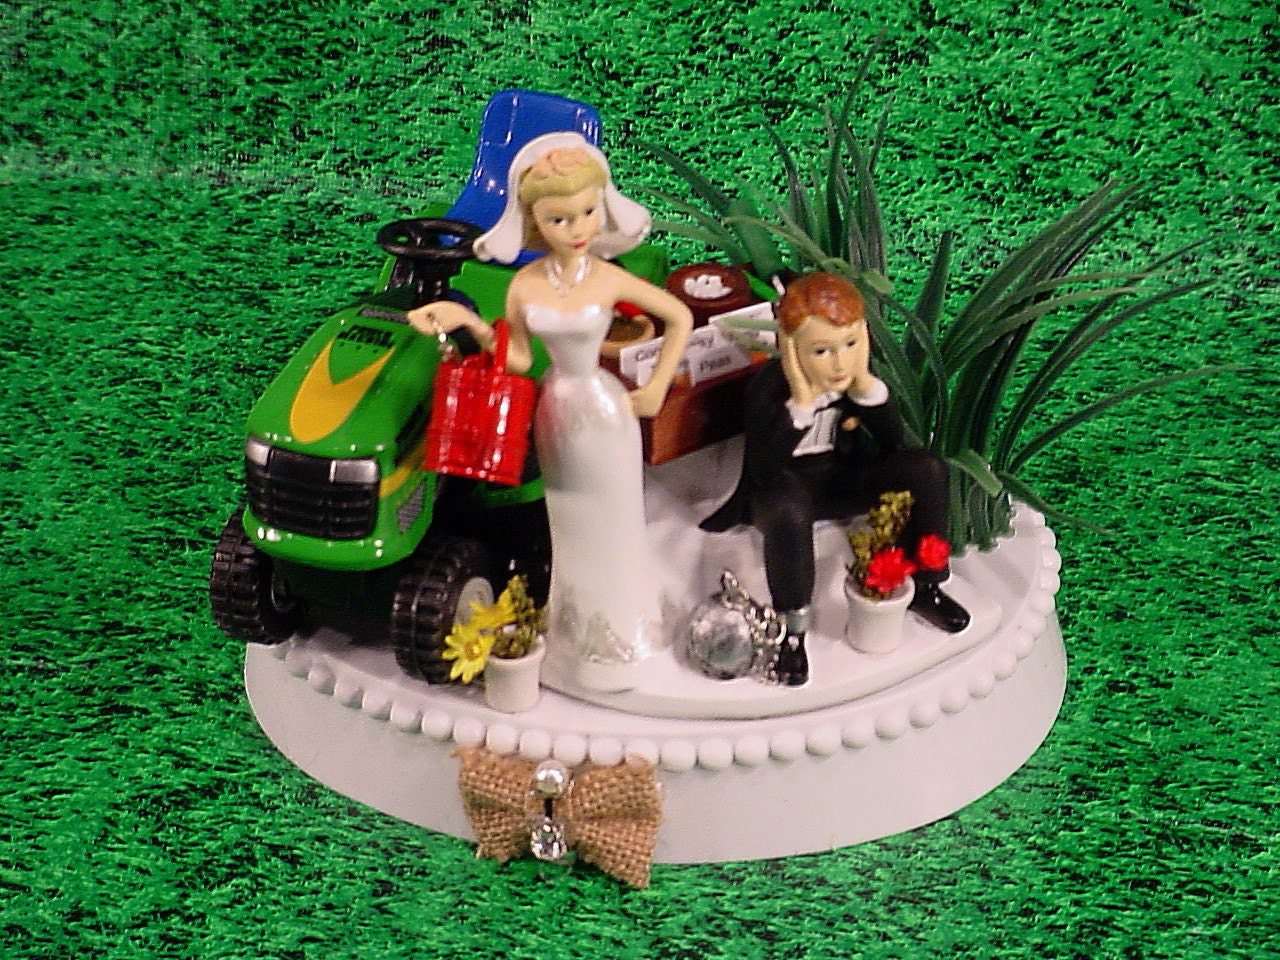 Green Lawn Tractor Country Rustic Custom Groom s Wedding